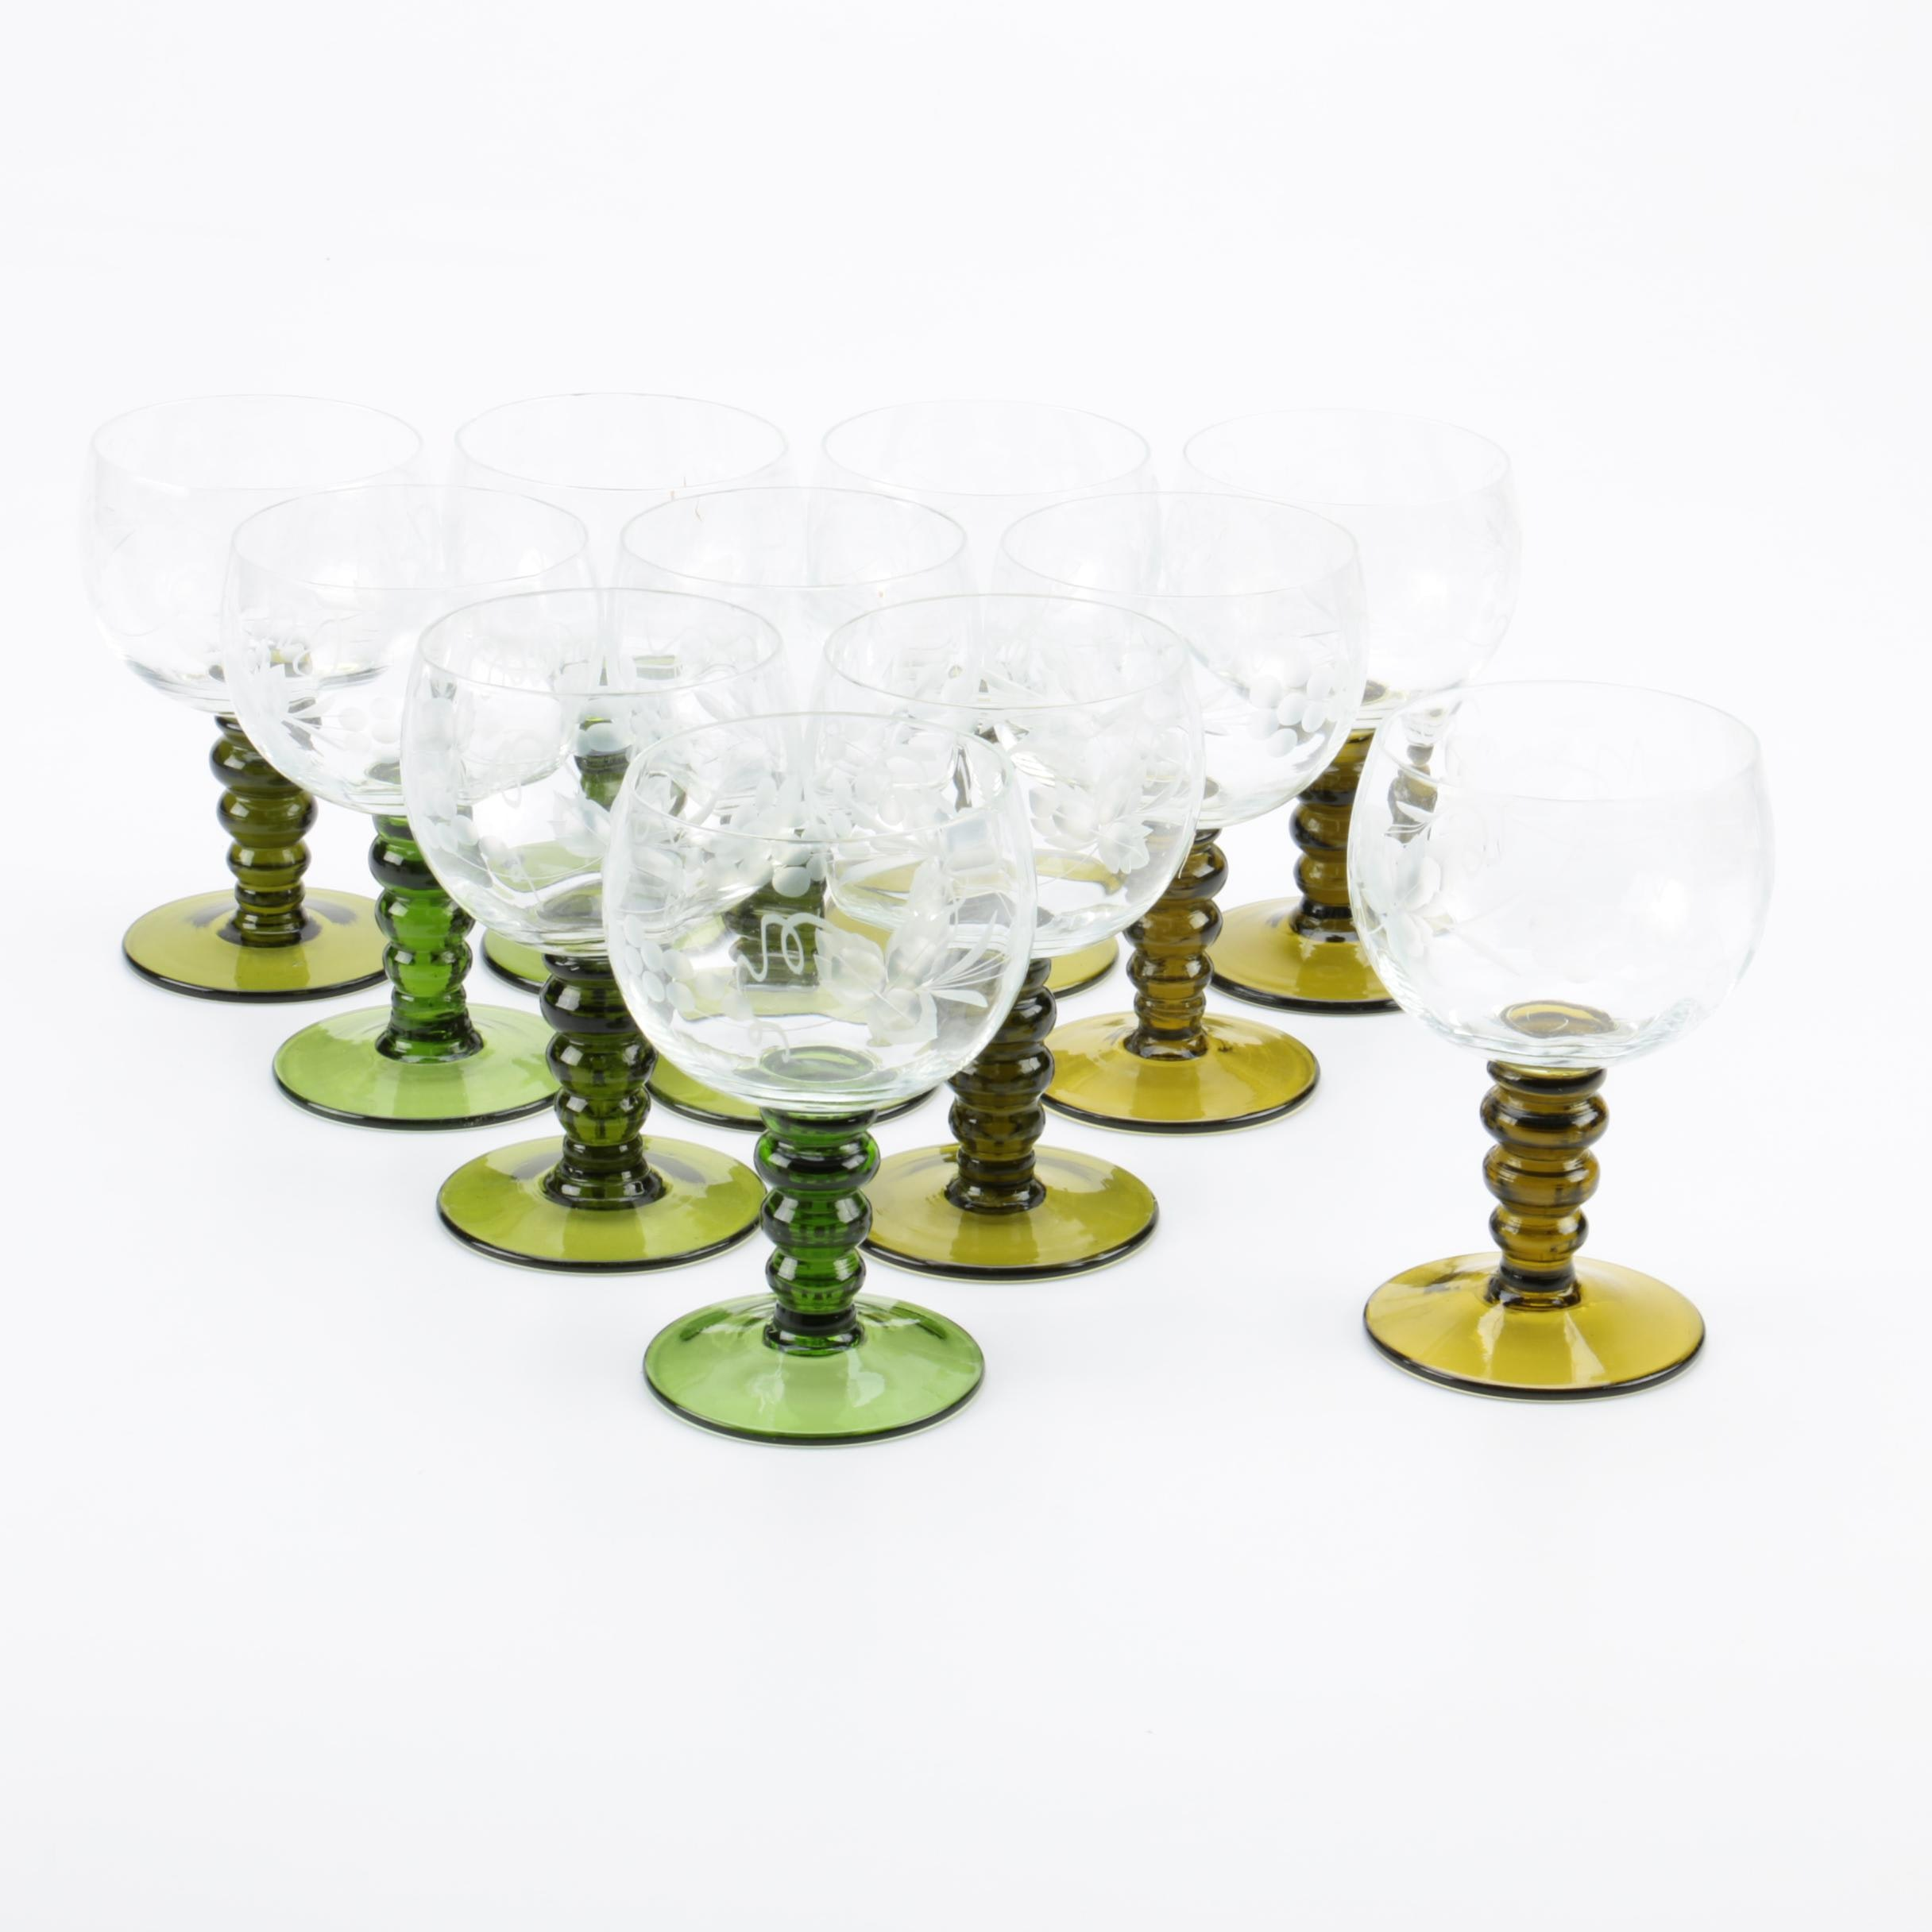 Collection of Romer Etched Cordial Glasses with Green Stems